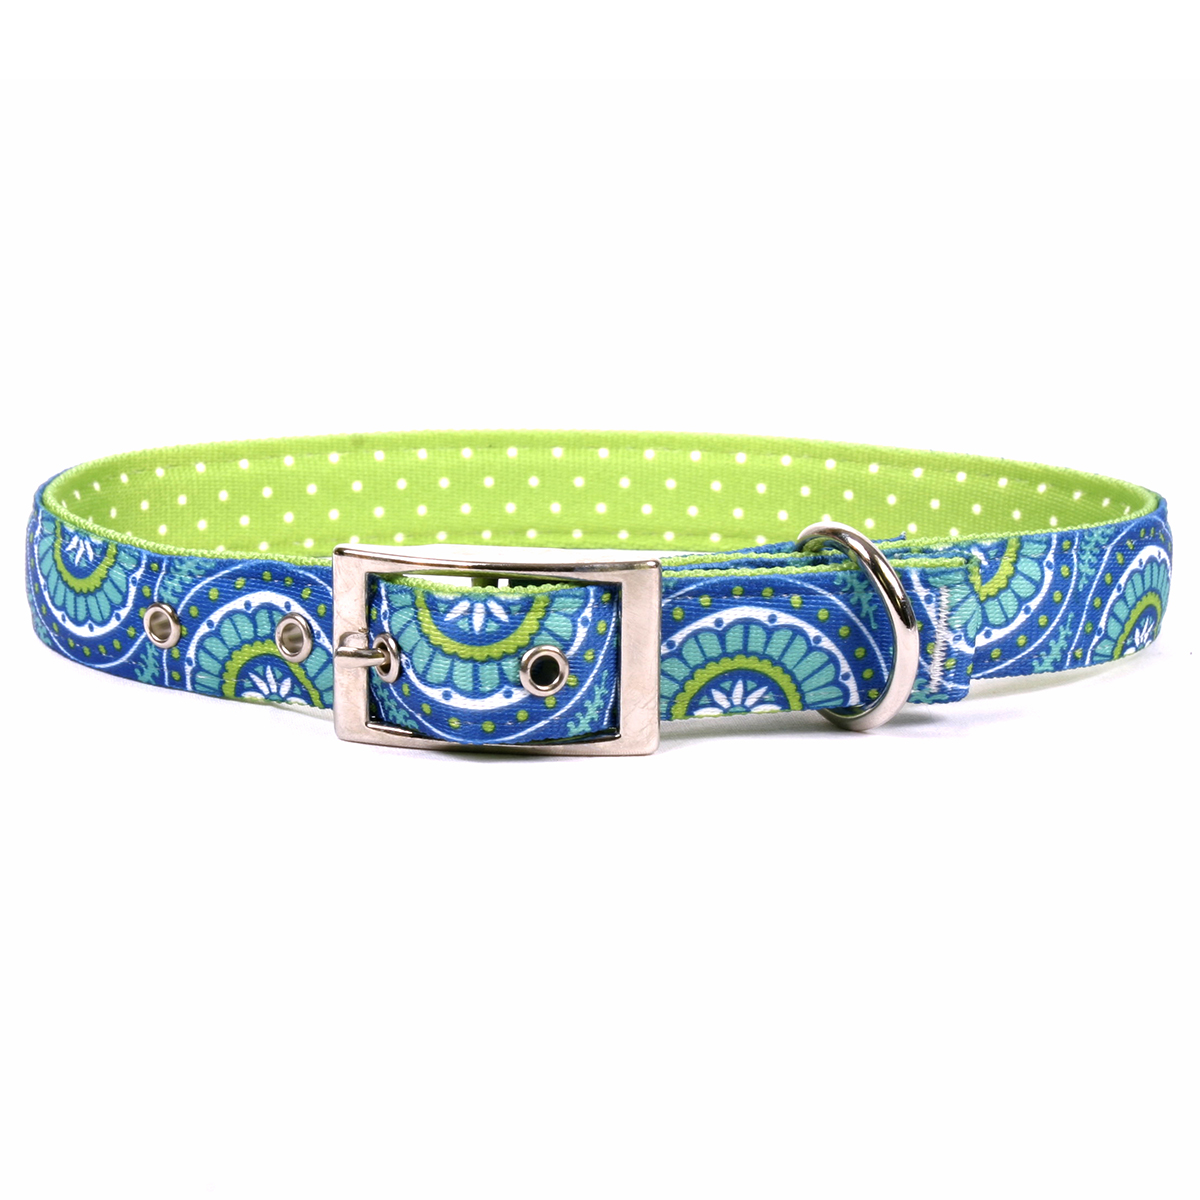 Radiance Blue Uptown Collar